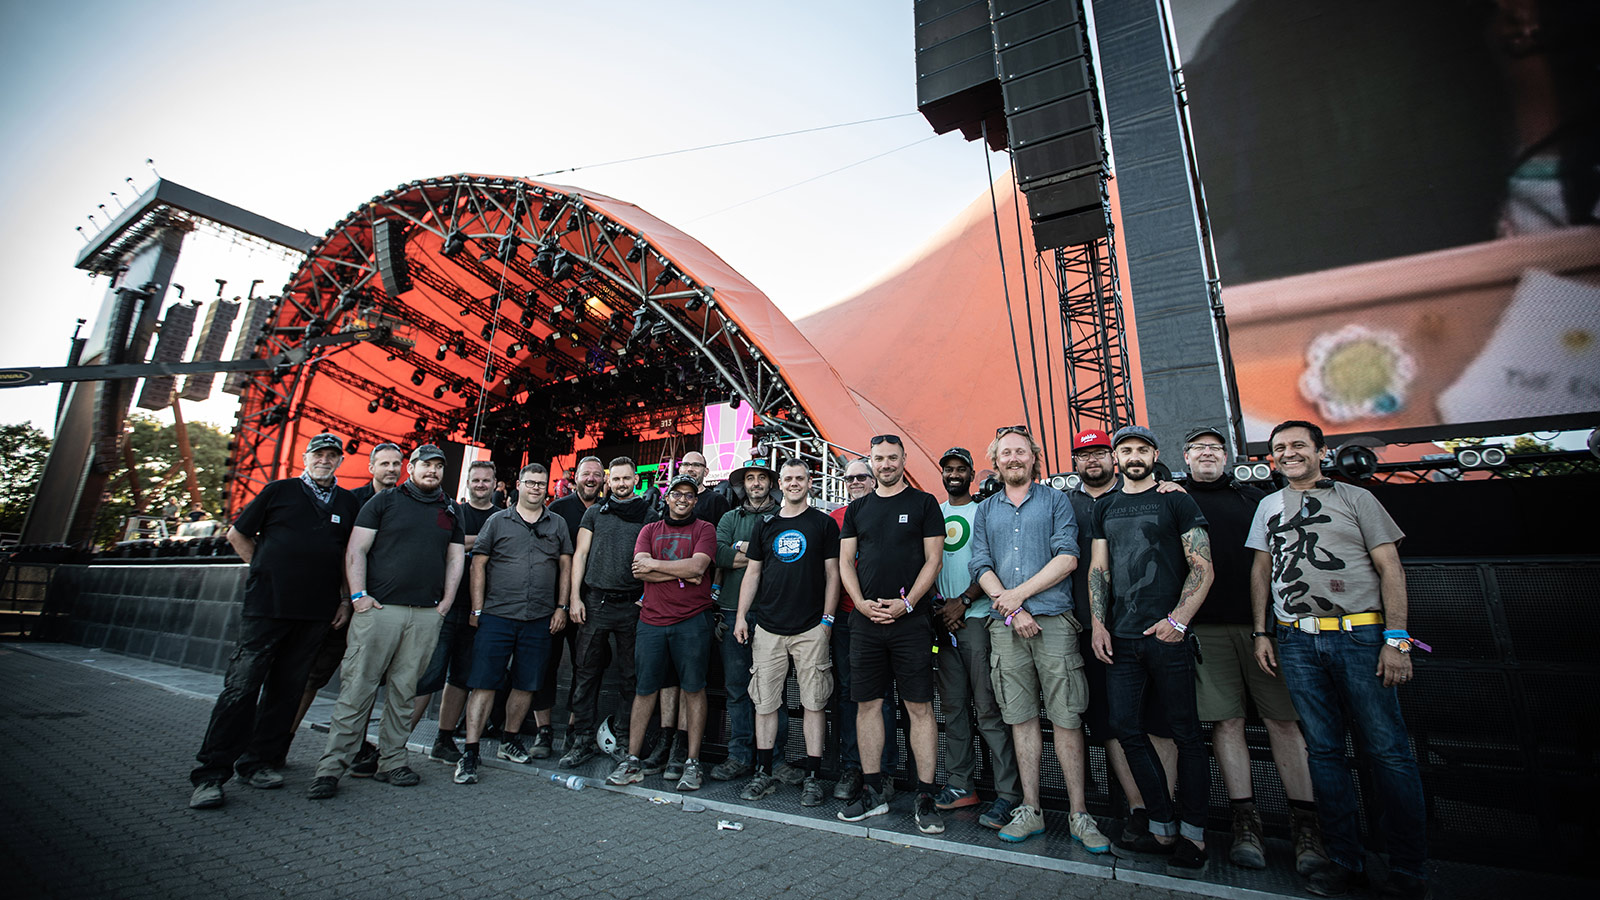 2018 Roskilde Festival Production Crew